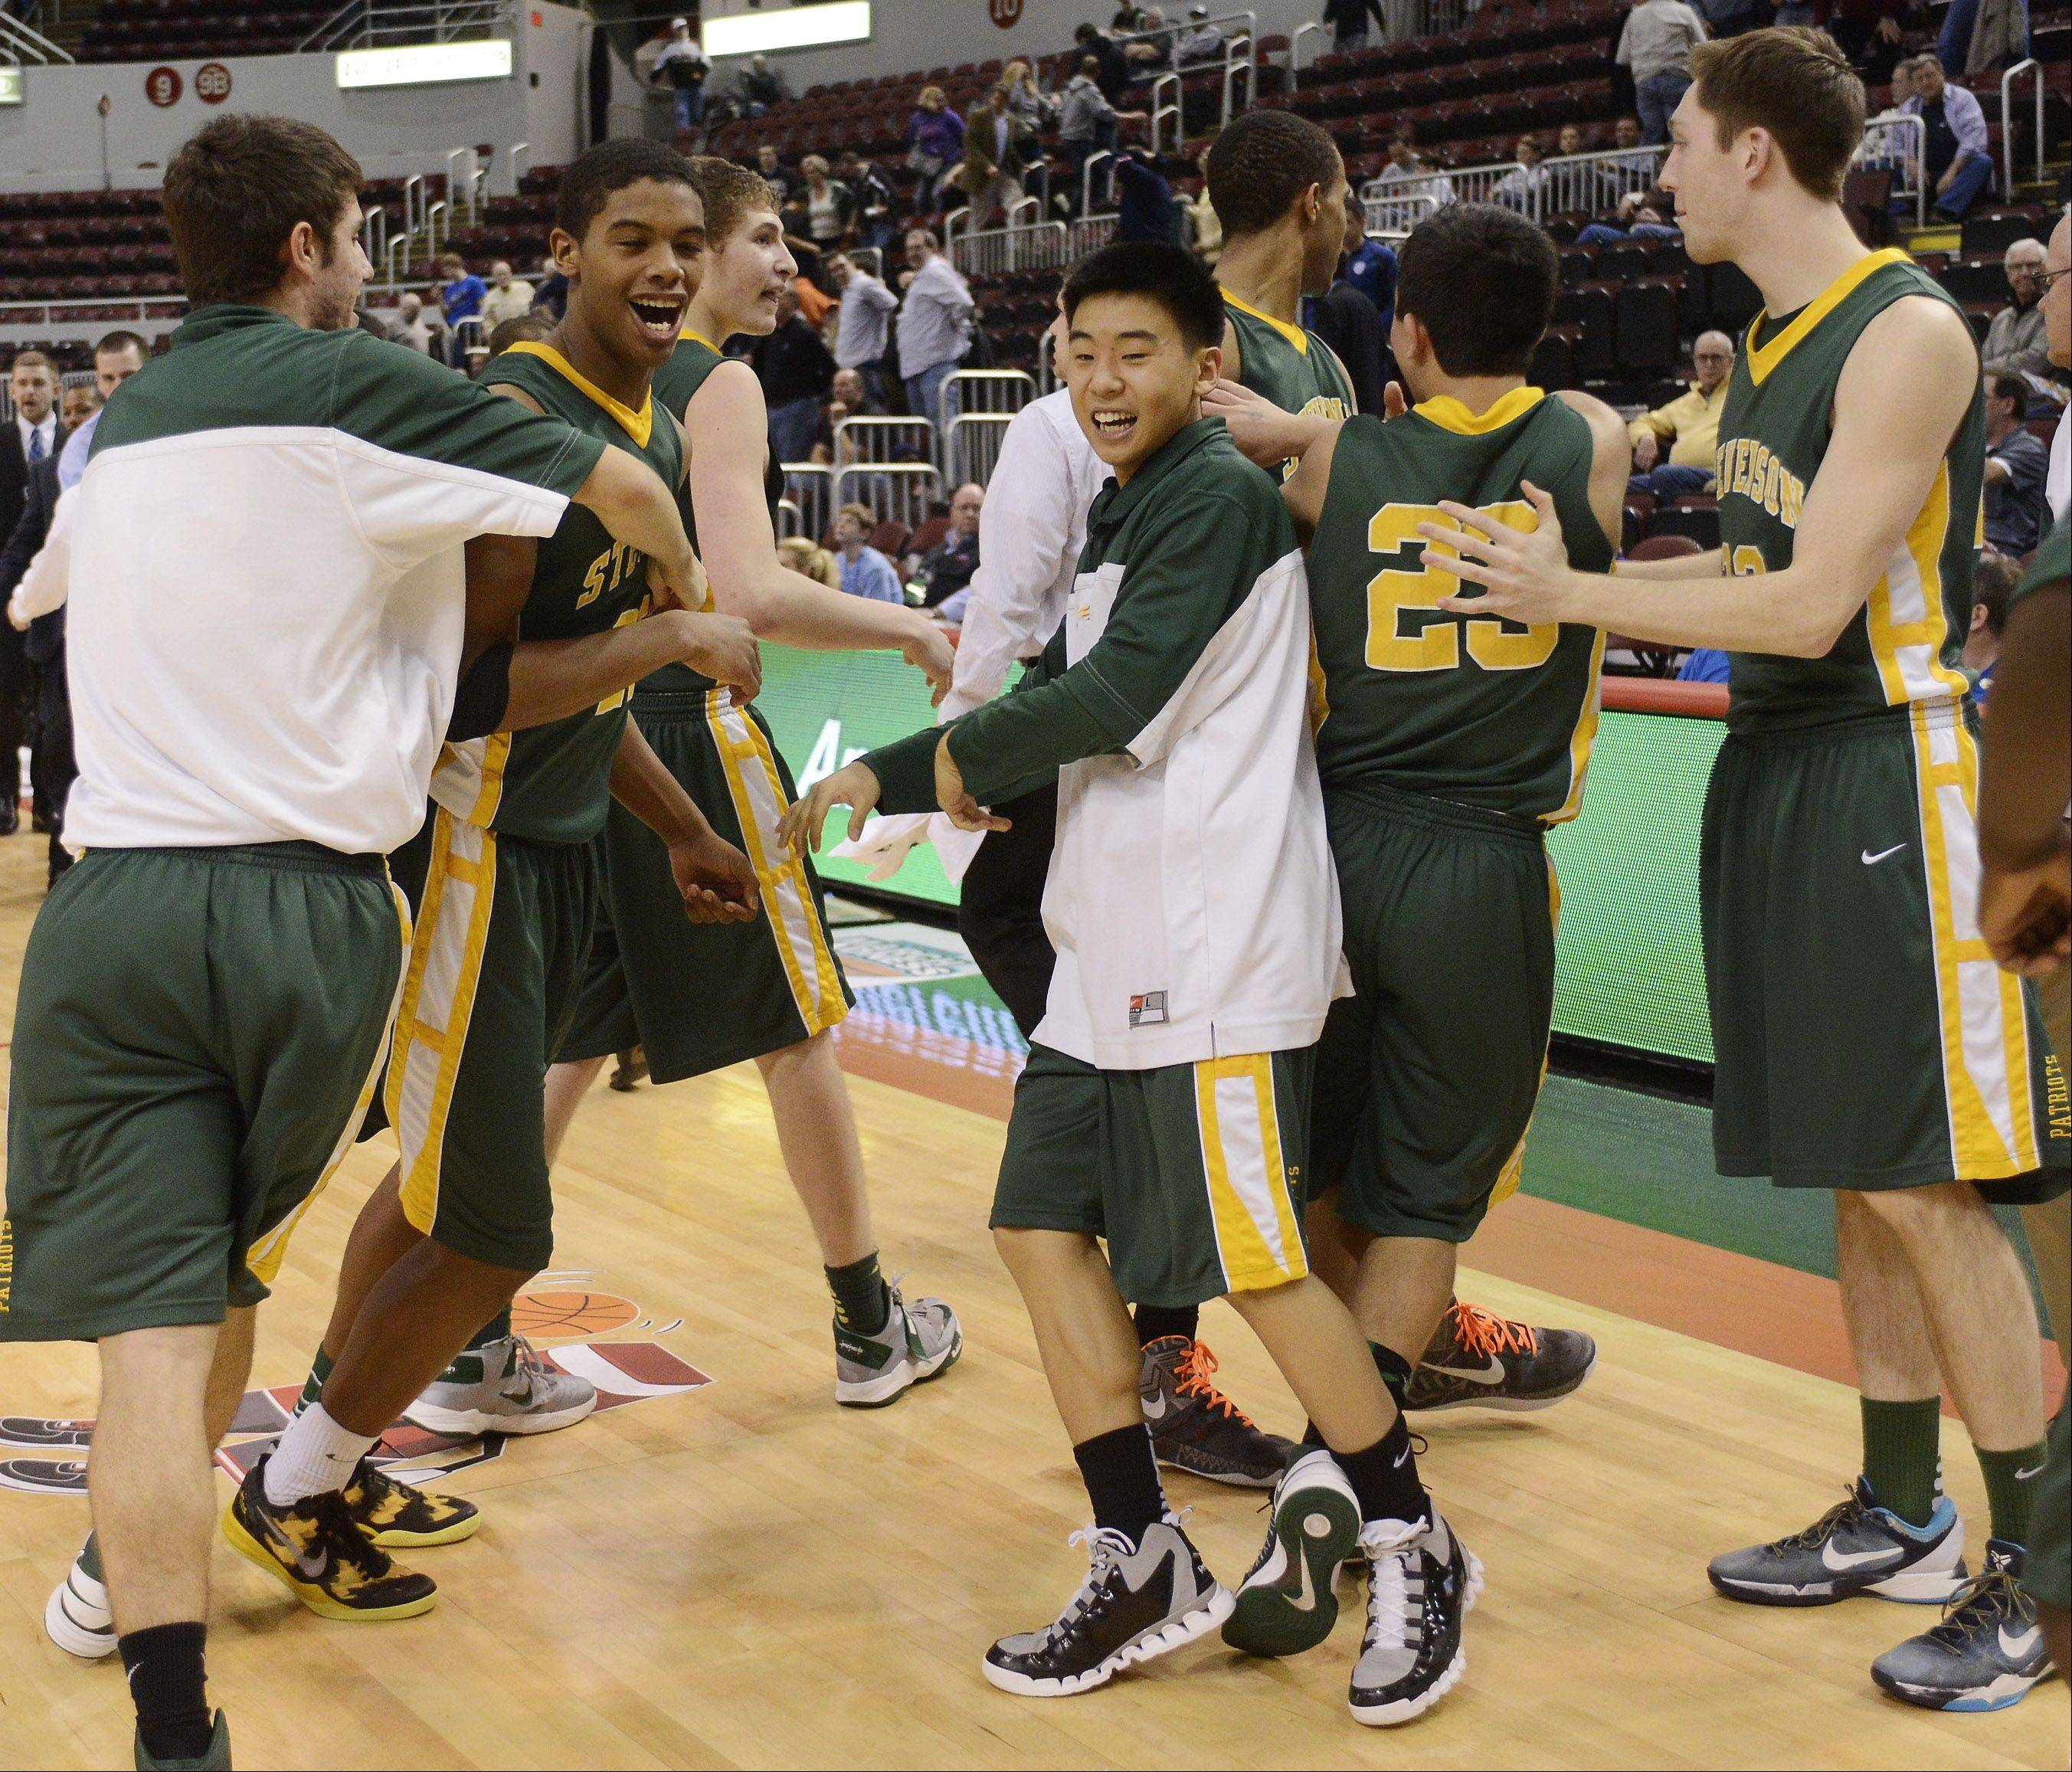 Stevenson players celebrate victory over Edwardsville.